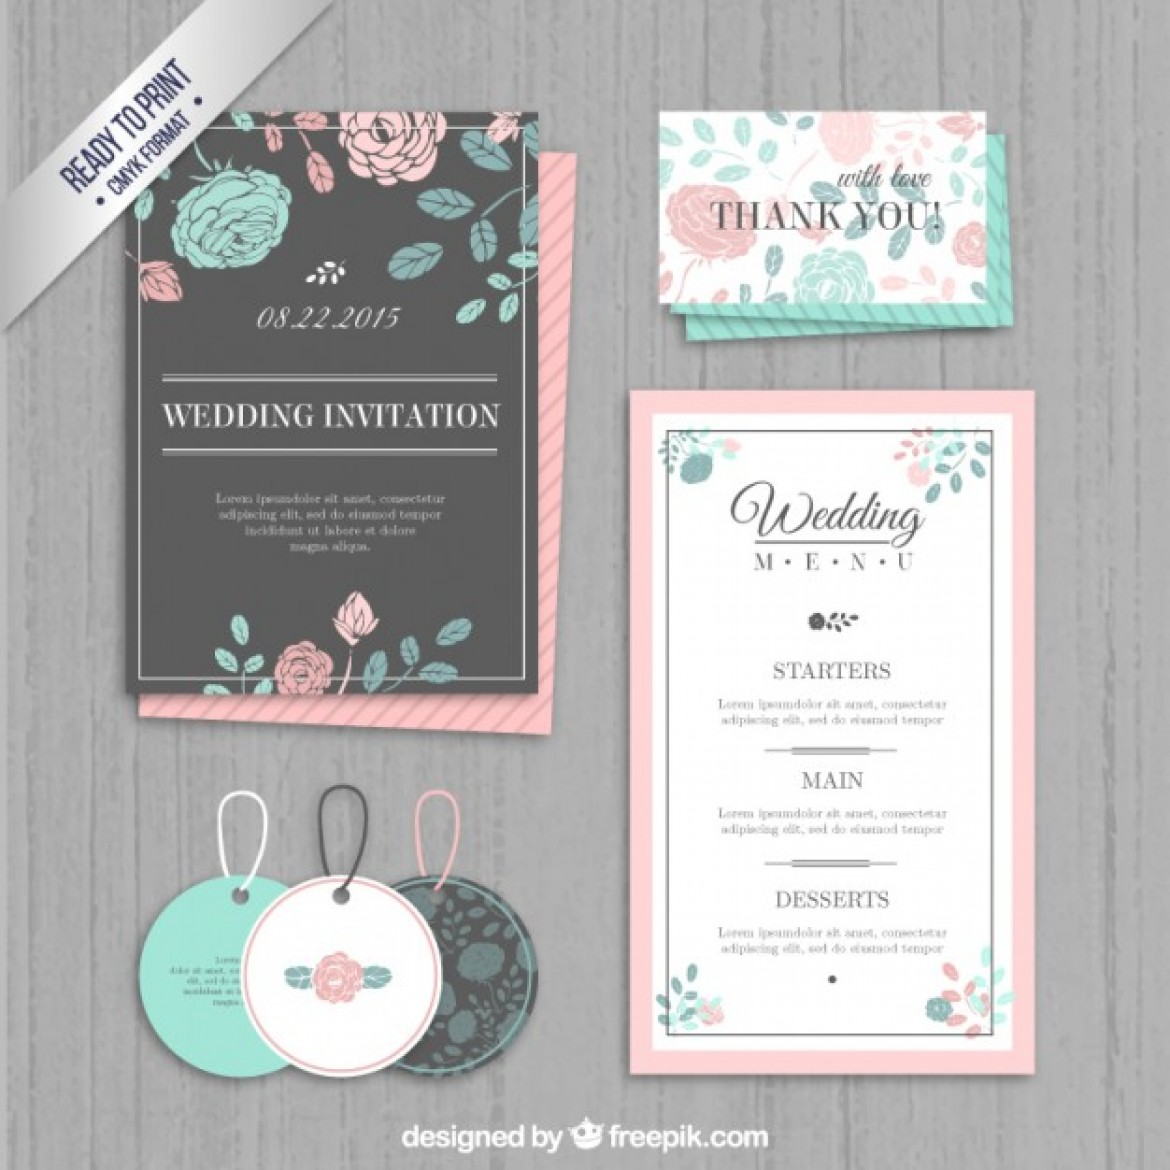 free wedding invitations templates with instant download - Wedding Invitation Labels